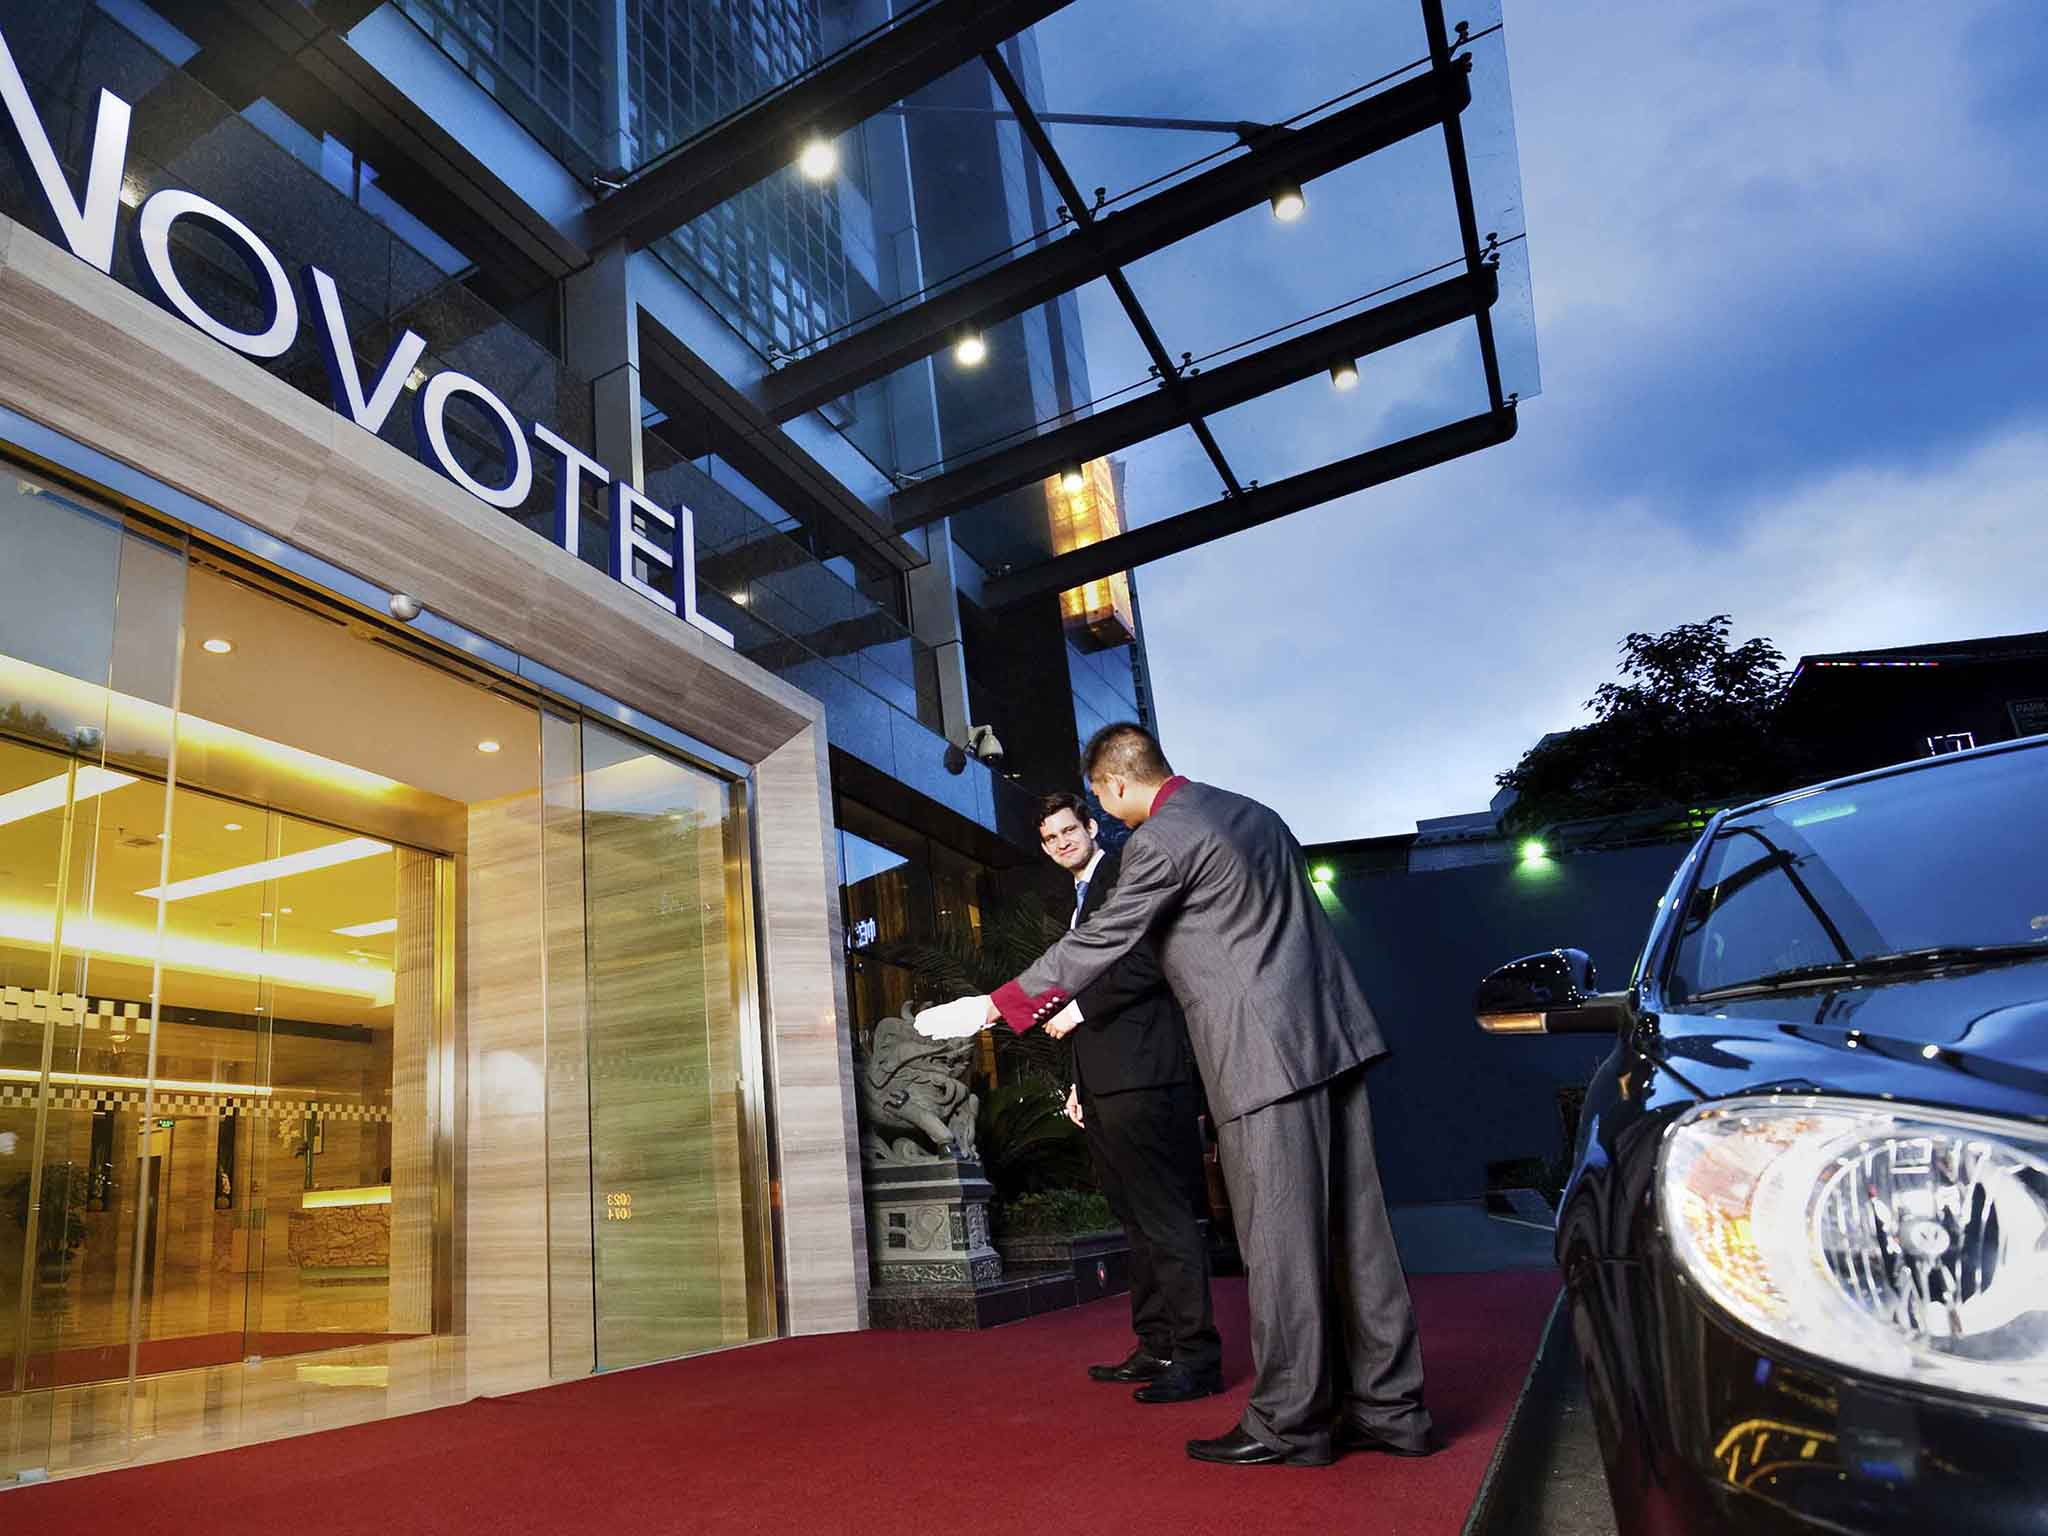 โรงแรม – Novotel Guiyang Downtown